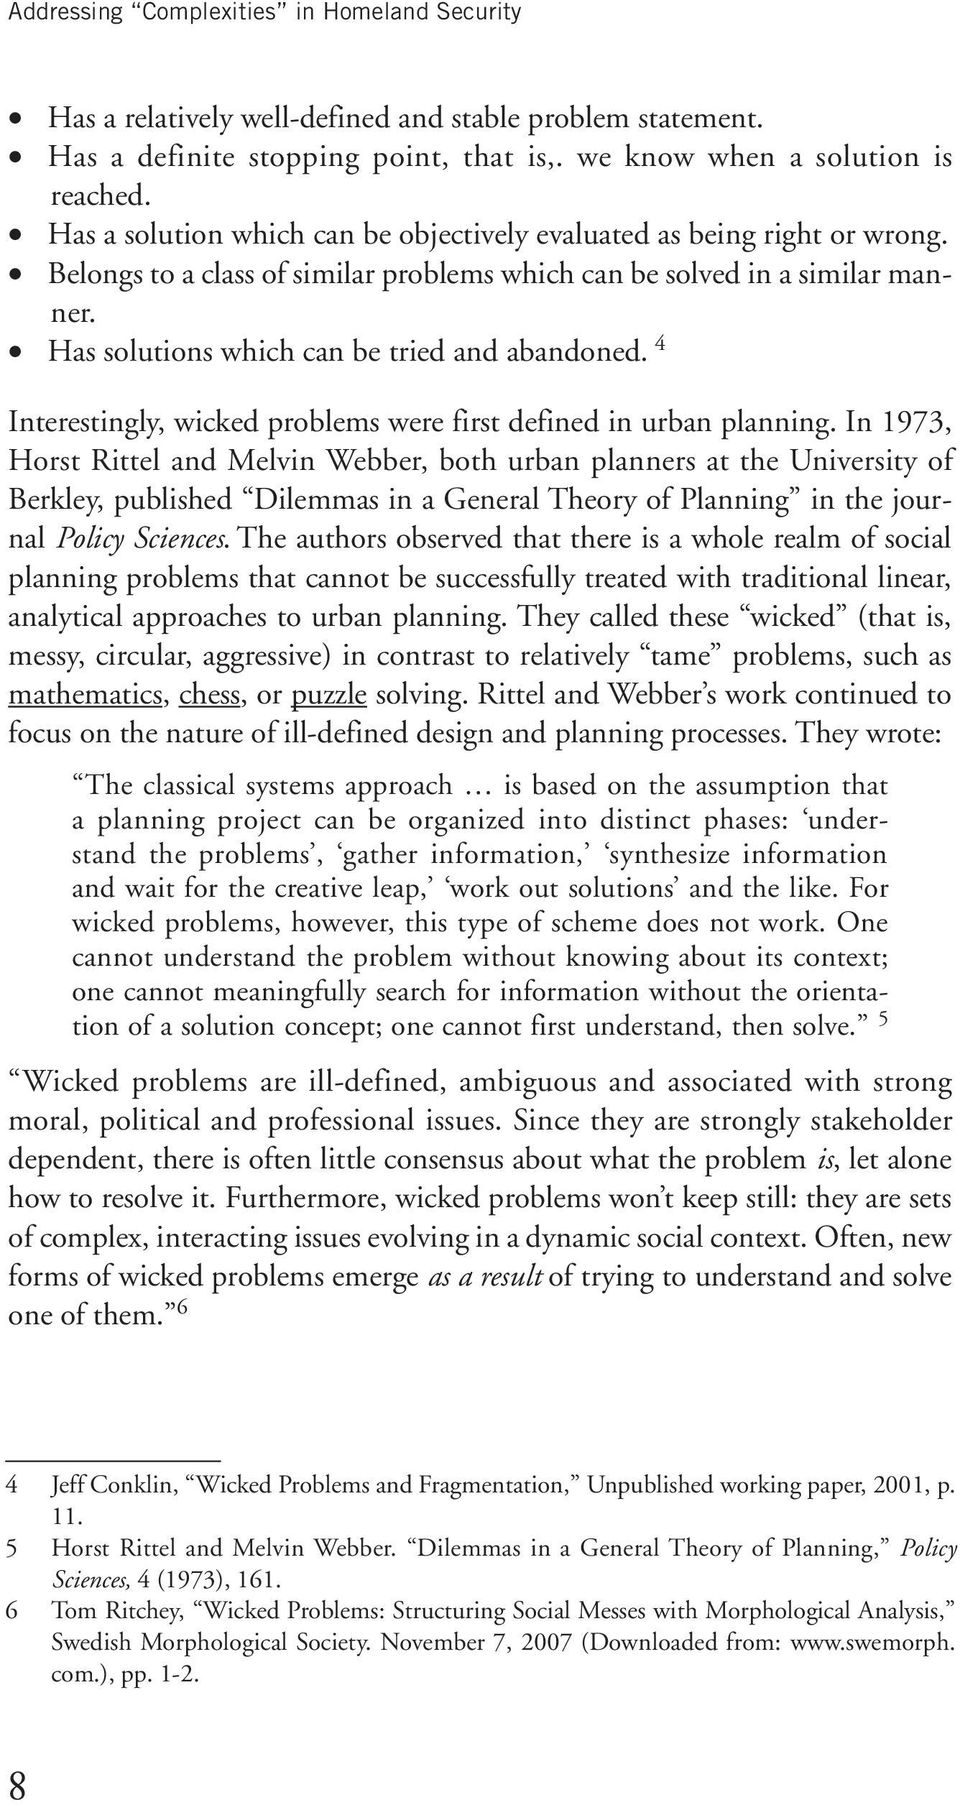 Has solutions which can be tried and abandoned. 4 Interestingly, wicked problems were first defined in urban planning.